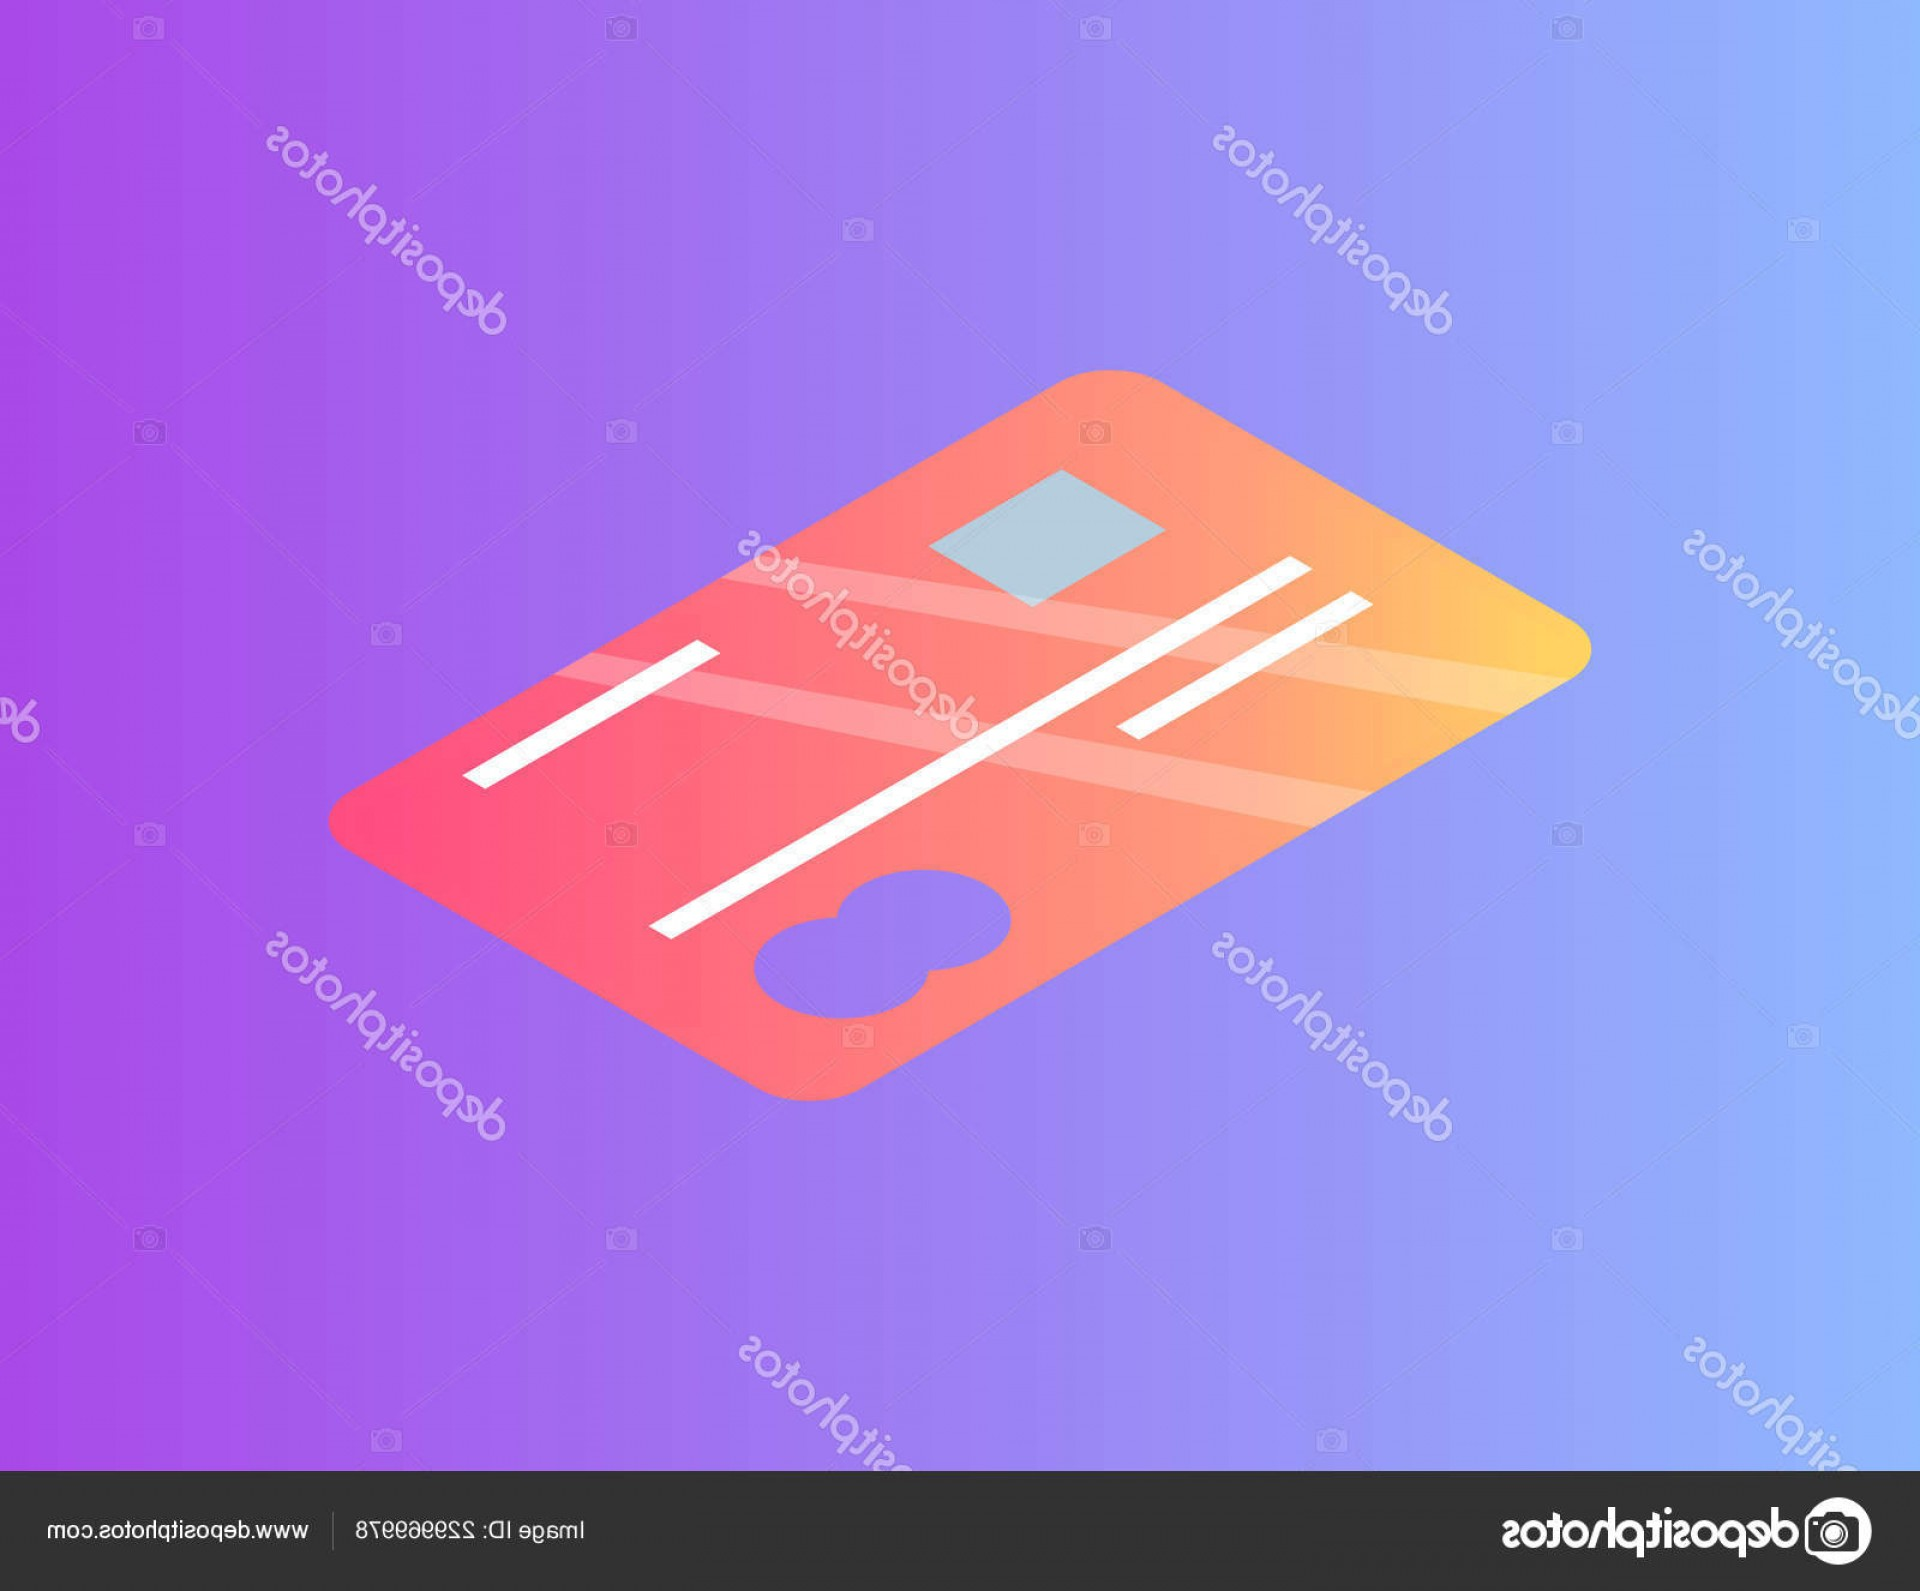 MasterCard Credit Card Logo Vector: Stock Illustration Debit Or Credit Card With